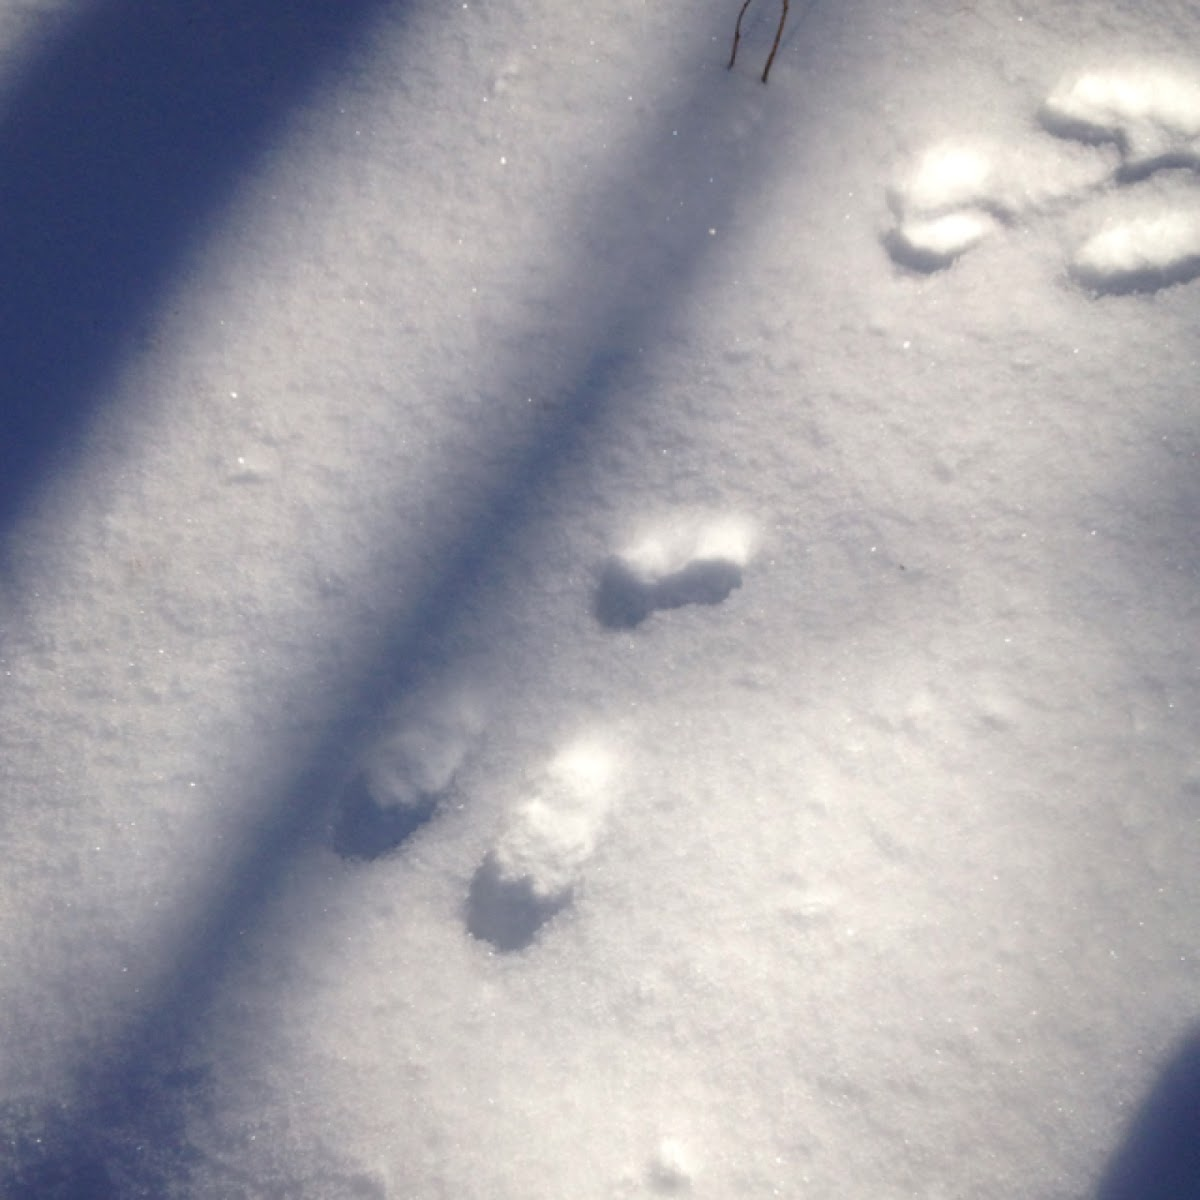 Cottontail rabbit tracks